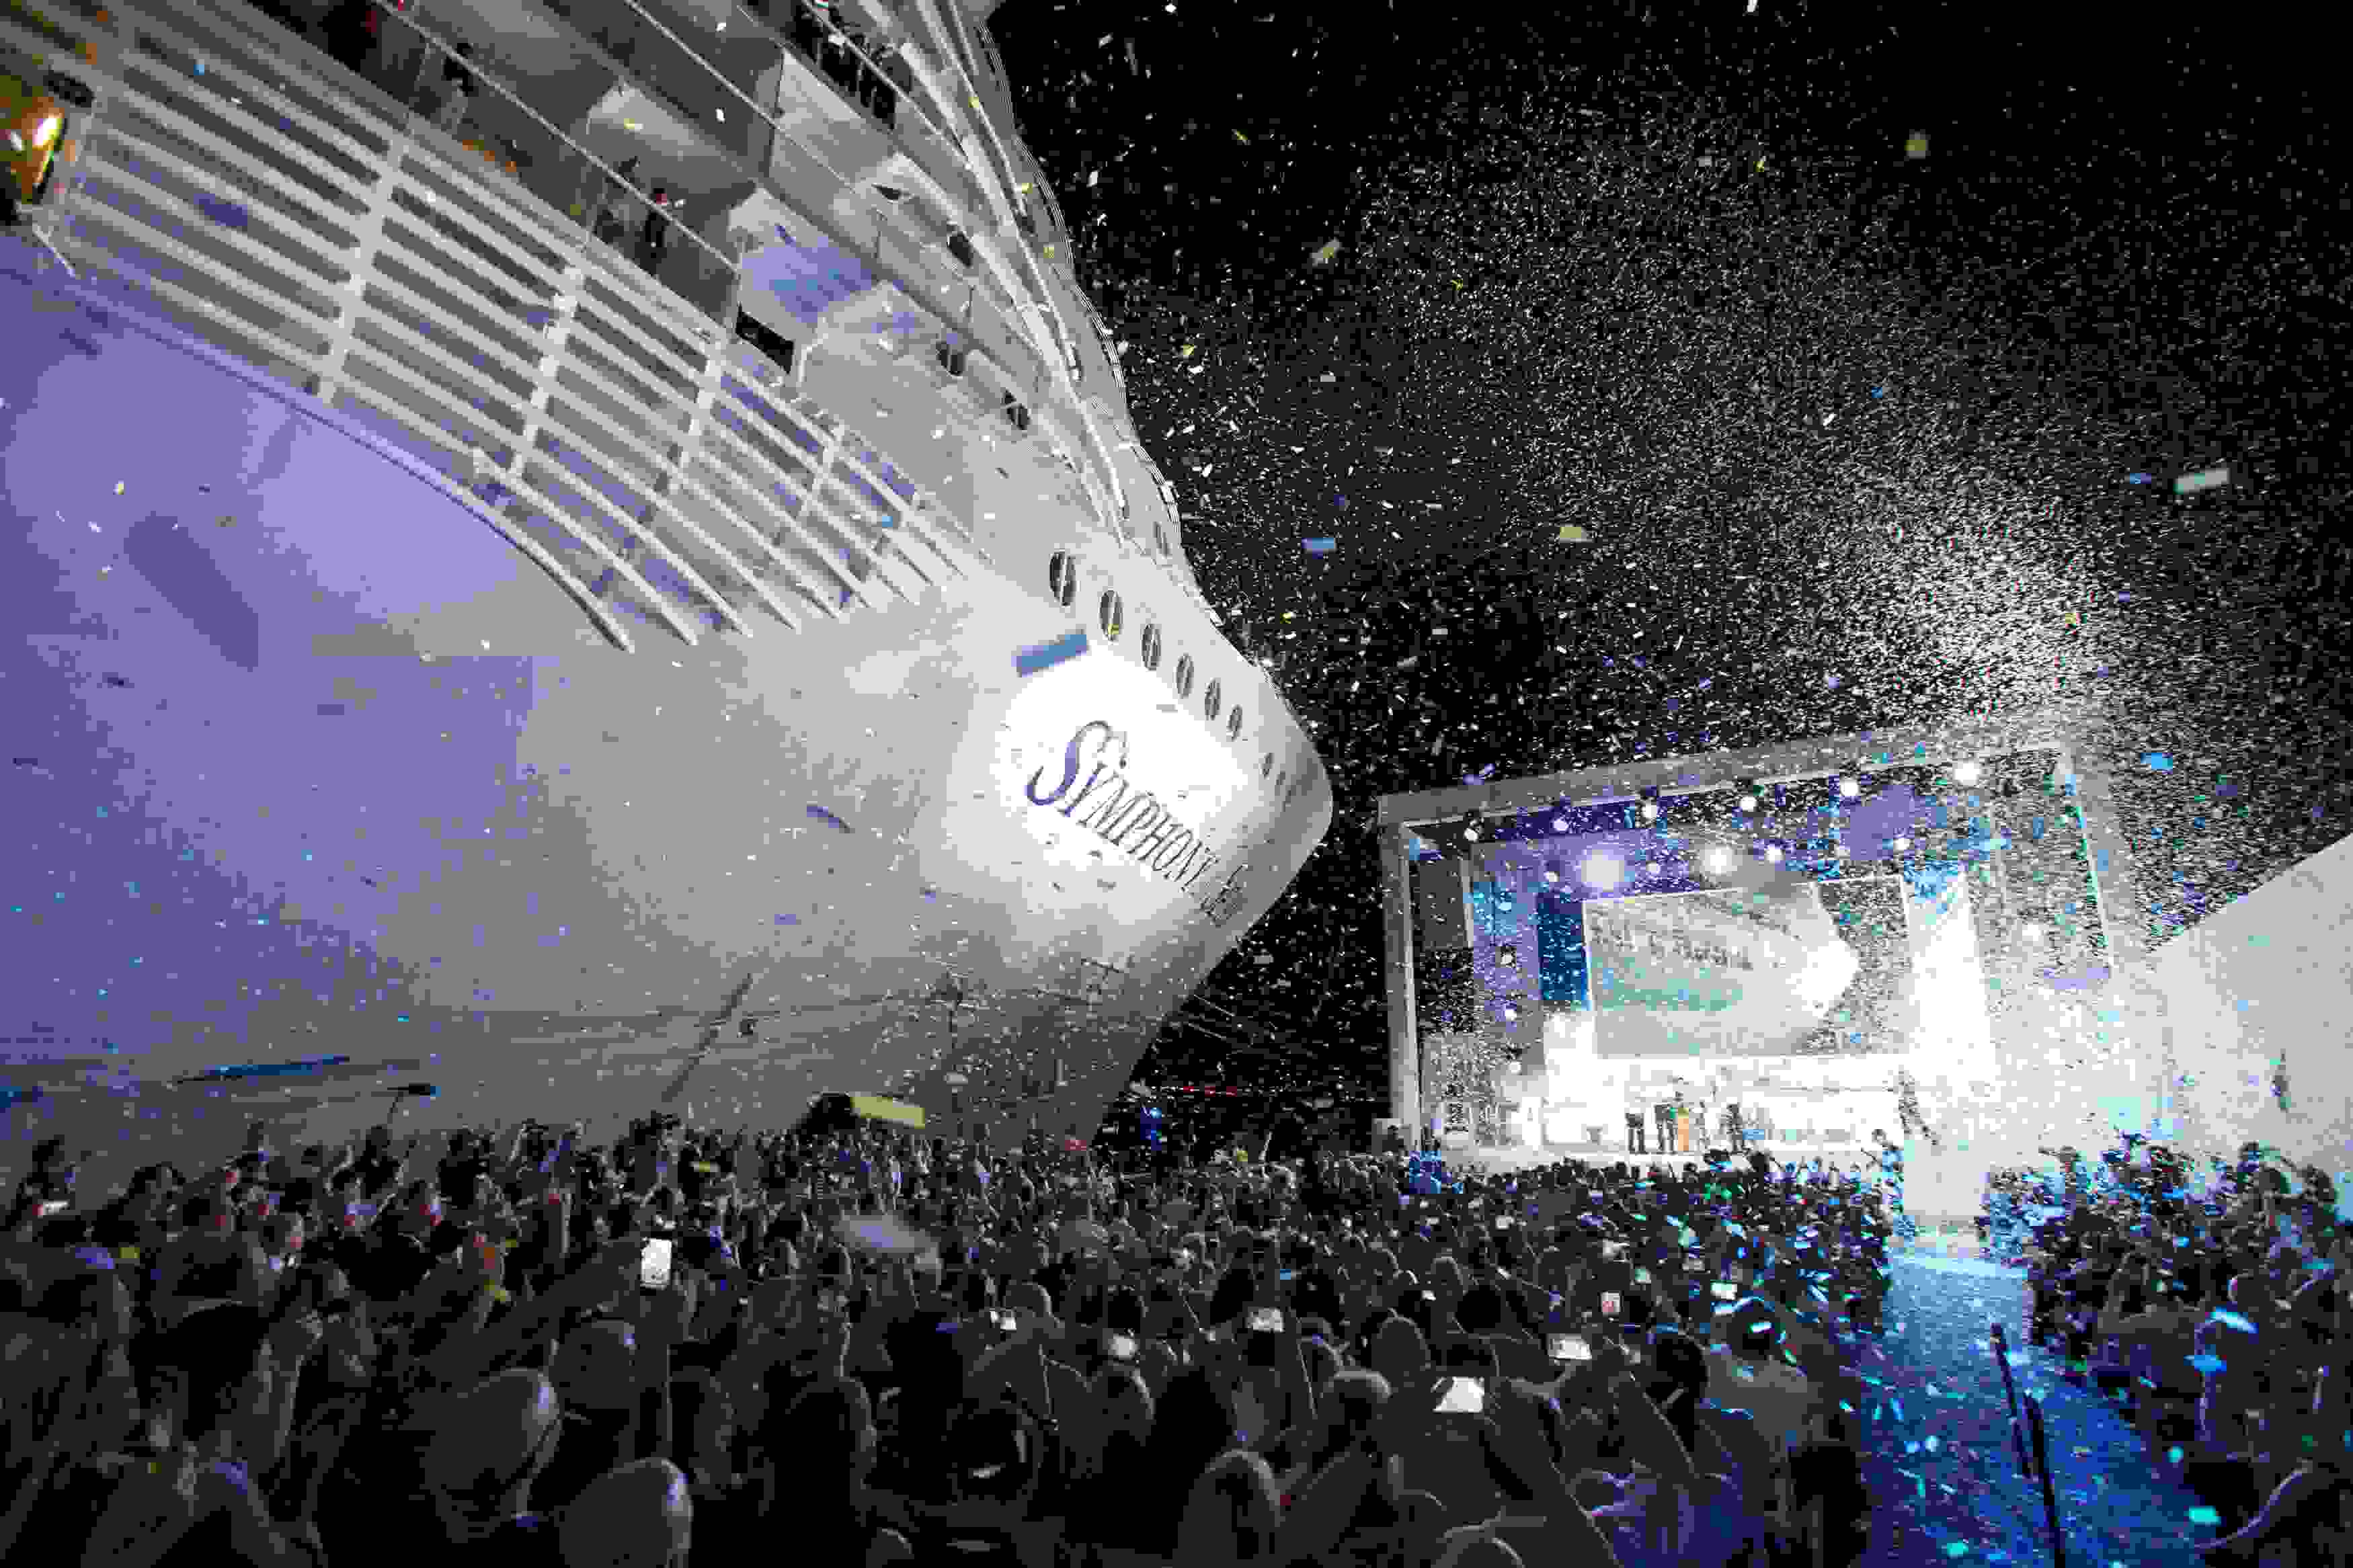 Le Symphony of the Seas baptisé